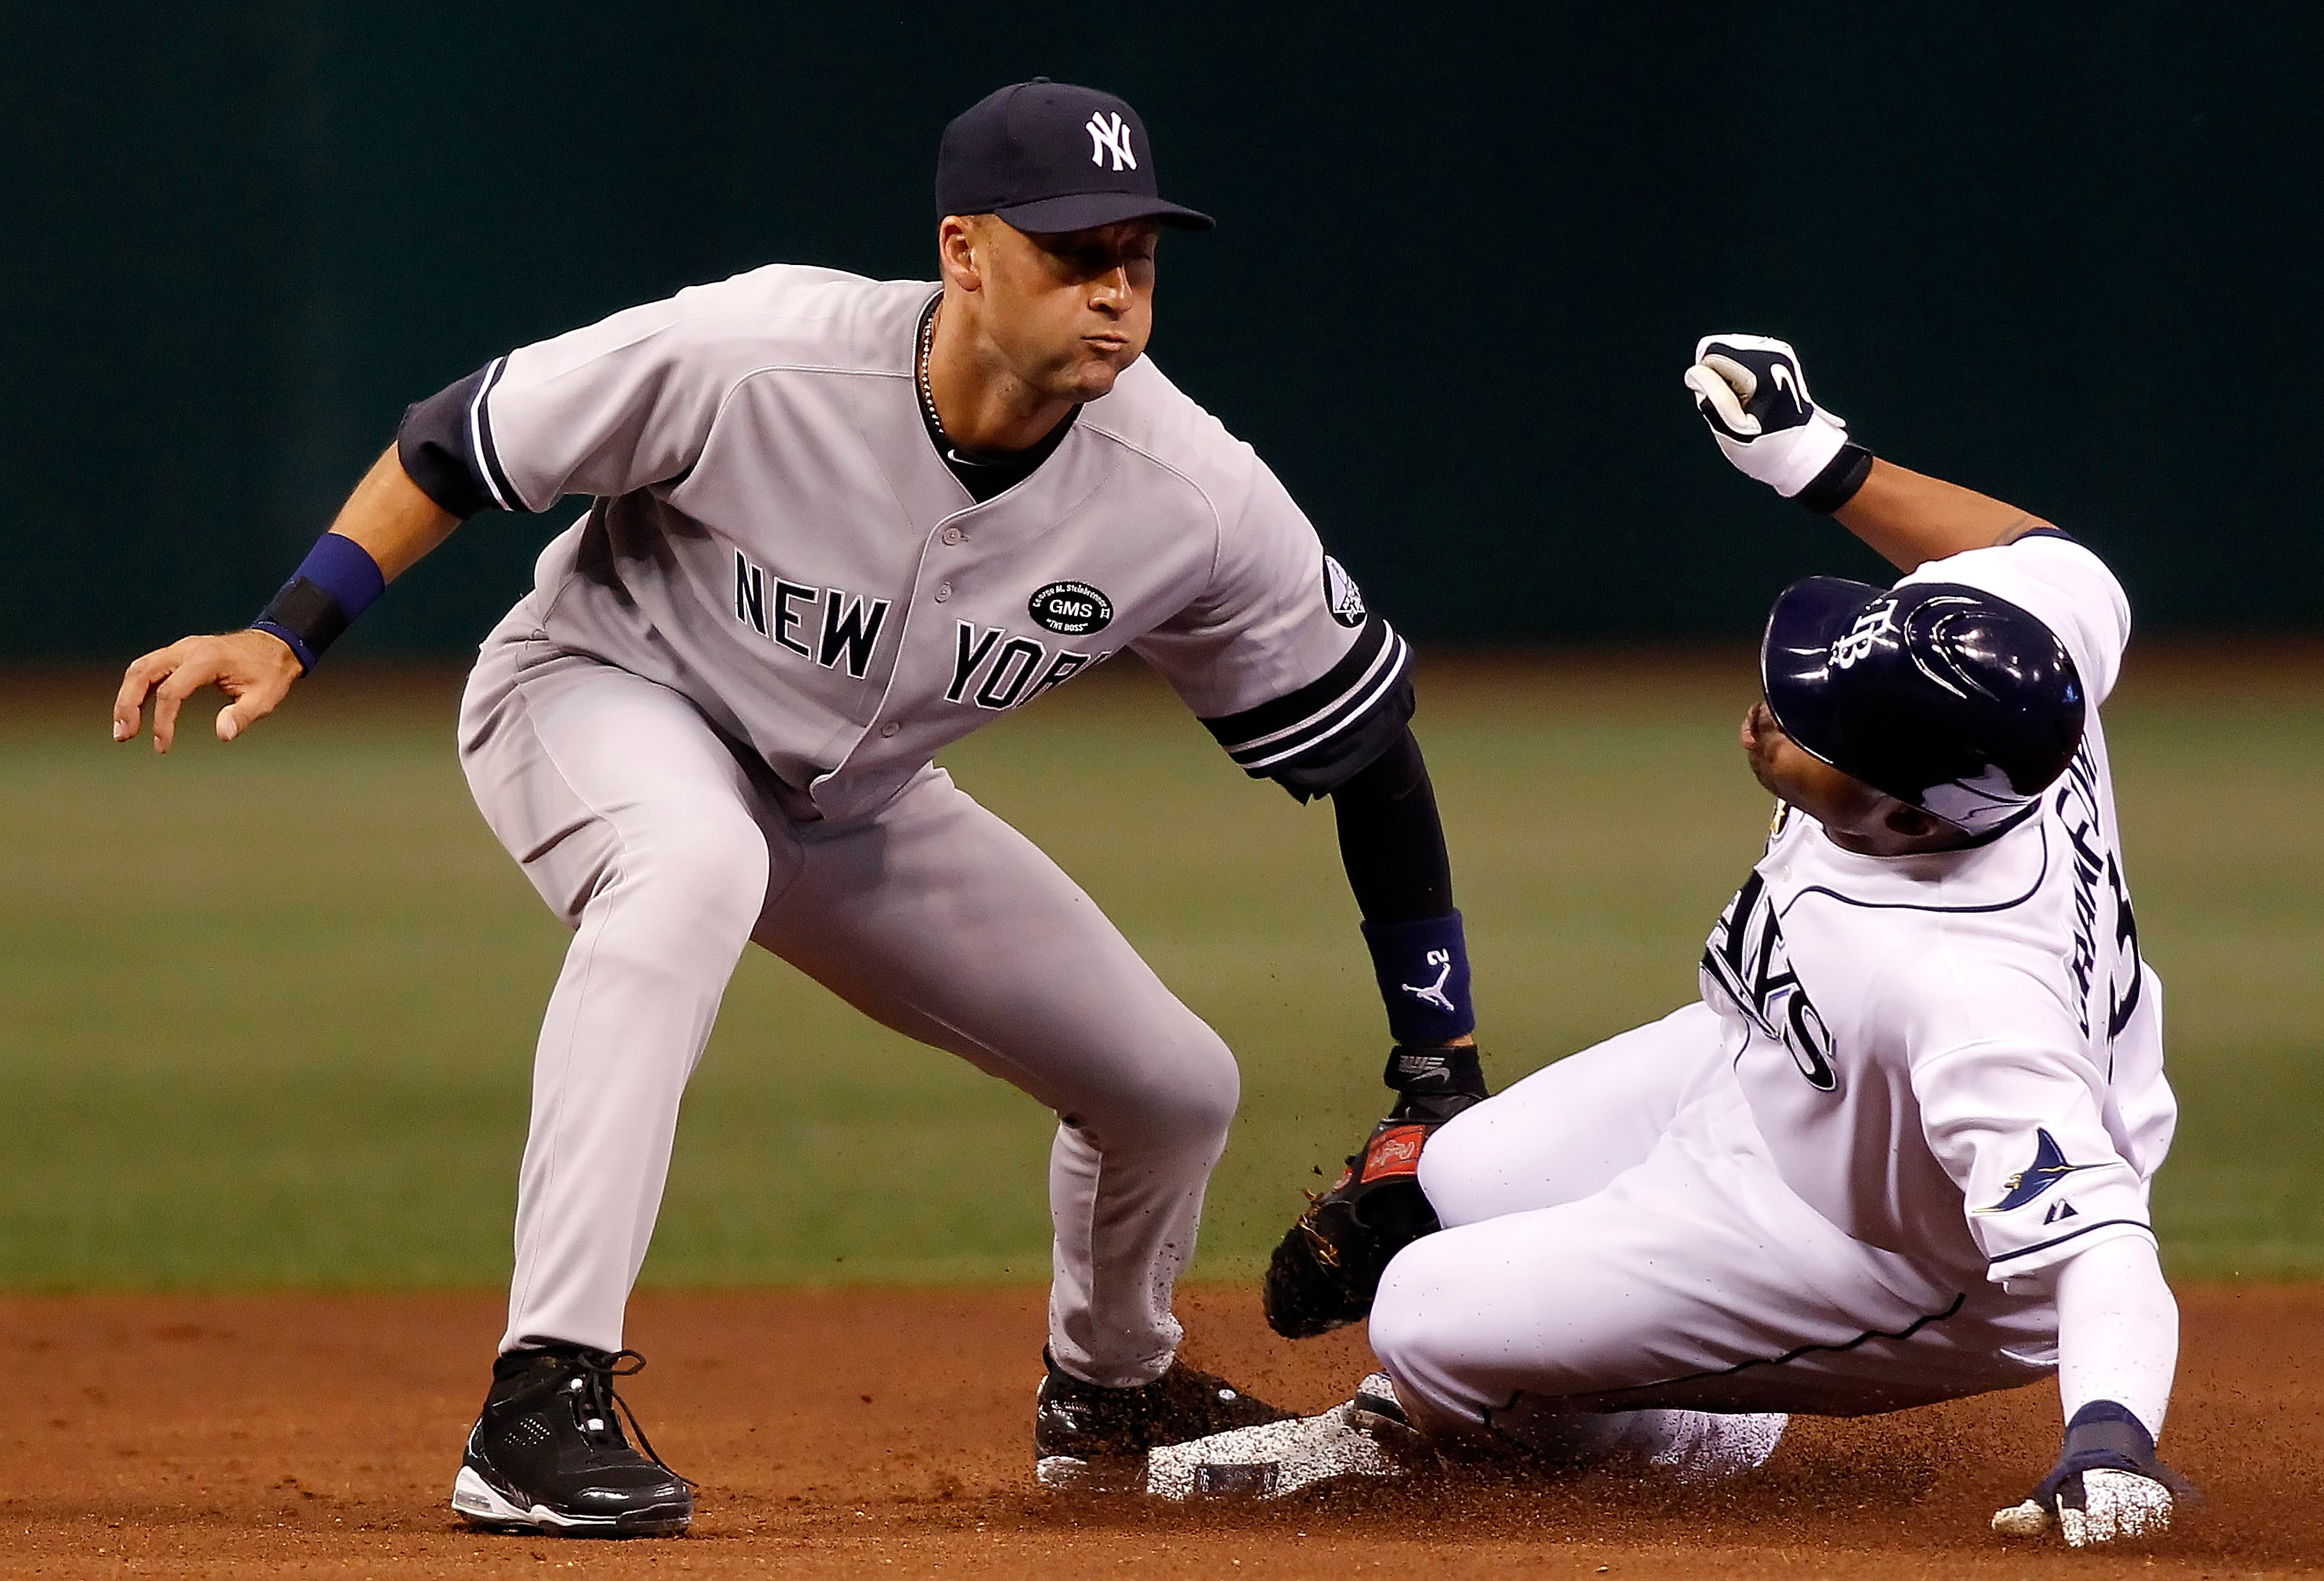 ST PETERSBURG, FL - JULY 31:  Outfielder Carl Crawford #13 of the Tampa Bay Rays steals his 400th career base as shortstop Derek Jeter #2 of the New York Yankees is late with the tag during the game at Tropicana Field on July 31, 2010 in St. Petersburg, F